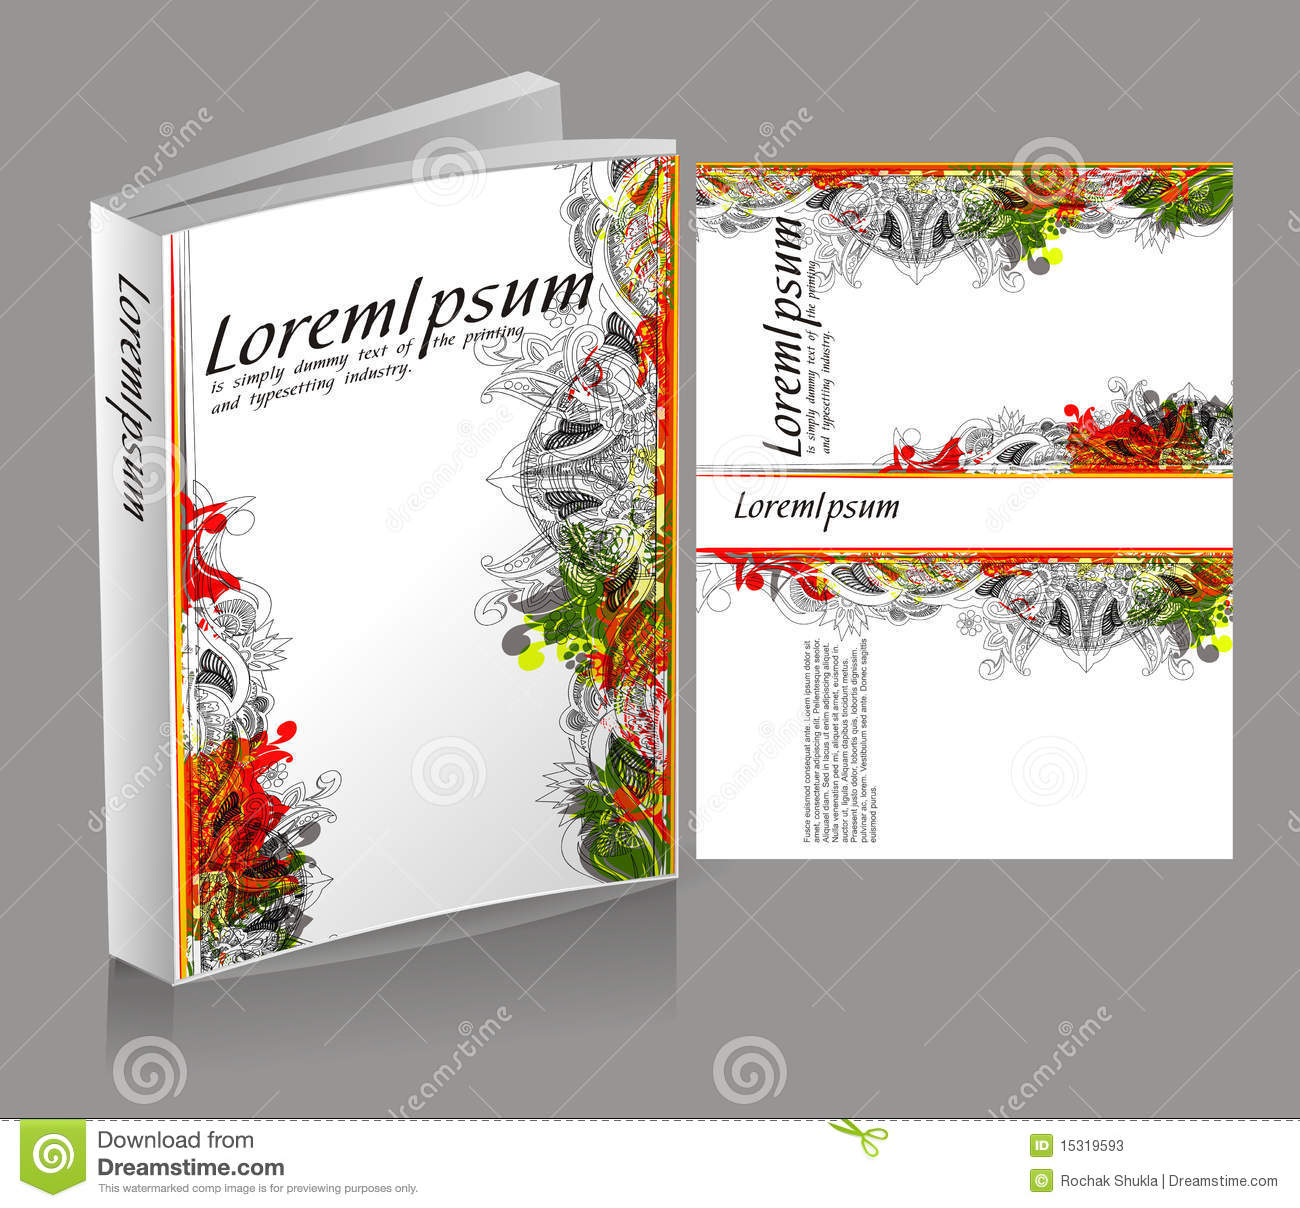 Book Jacket Cover Design : Book cover design stock vector image of closed modern